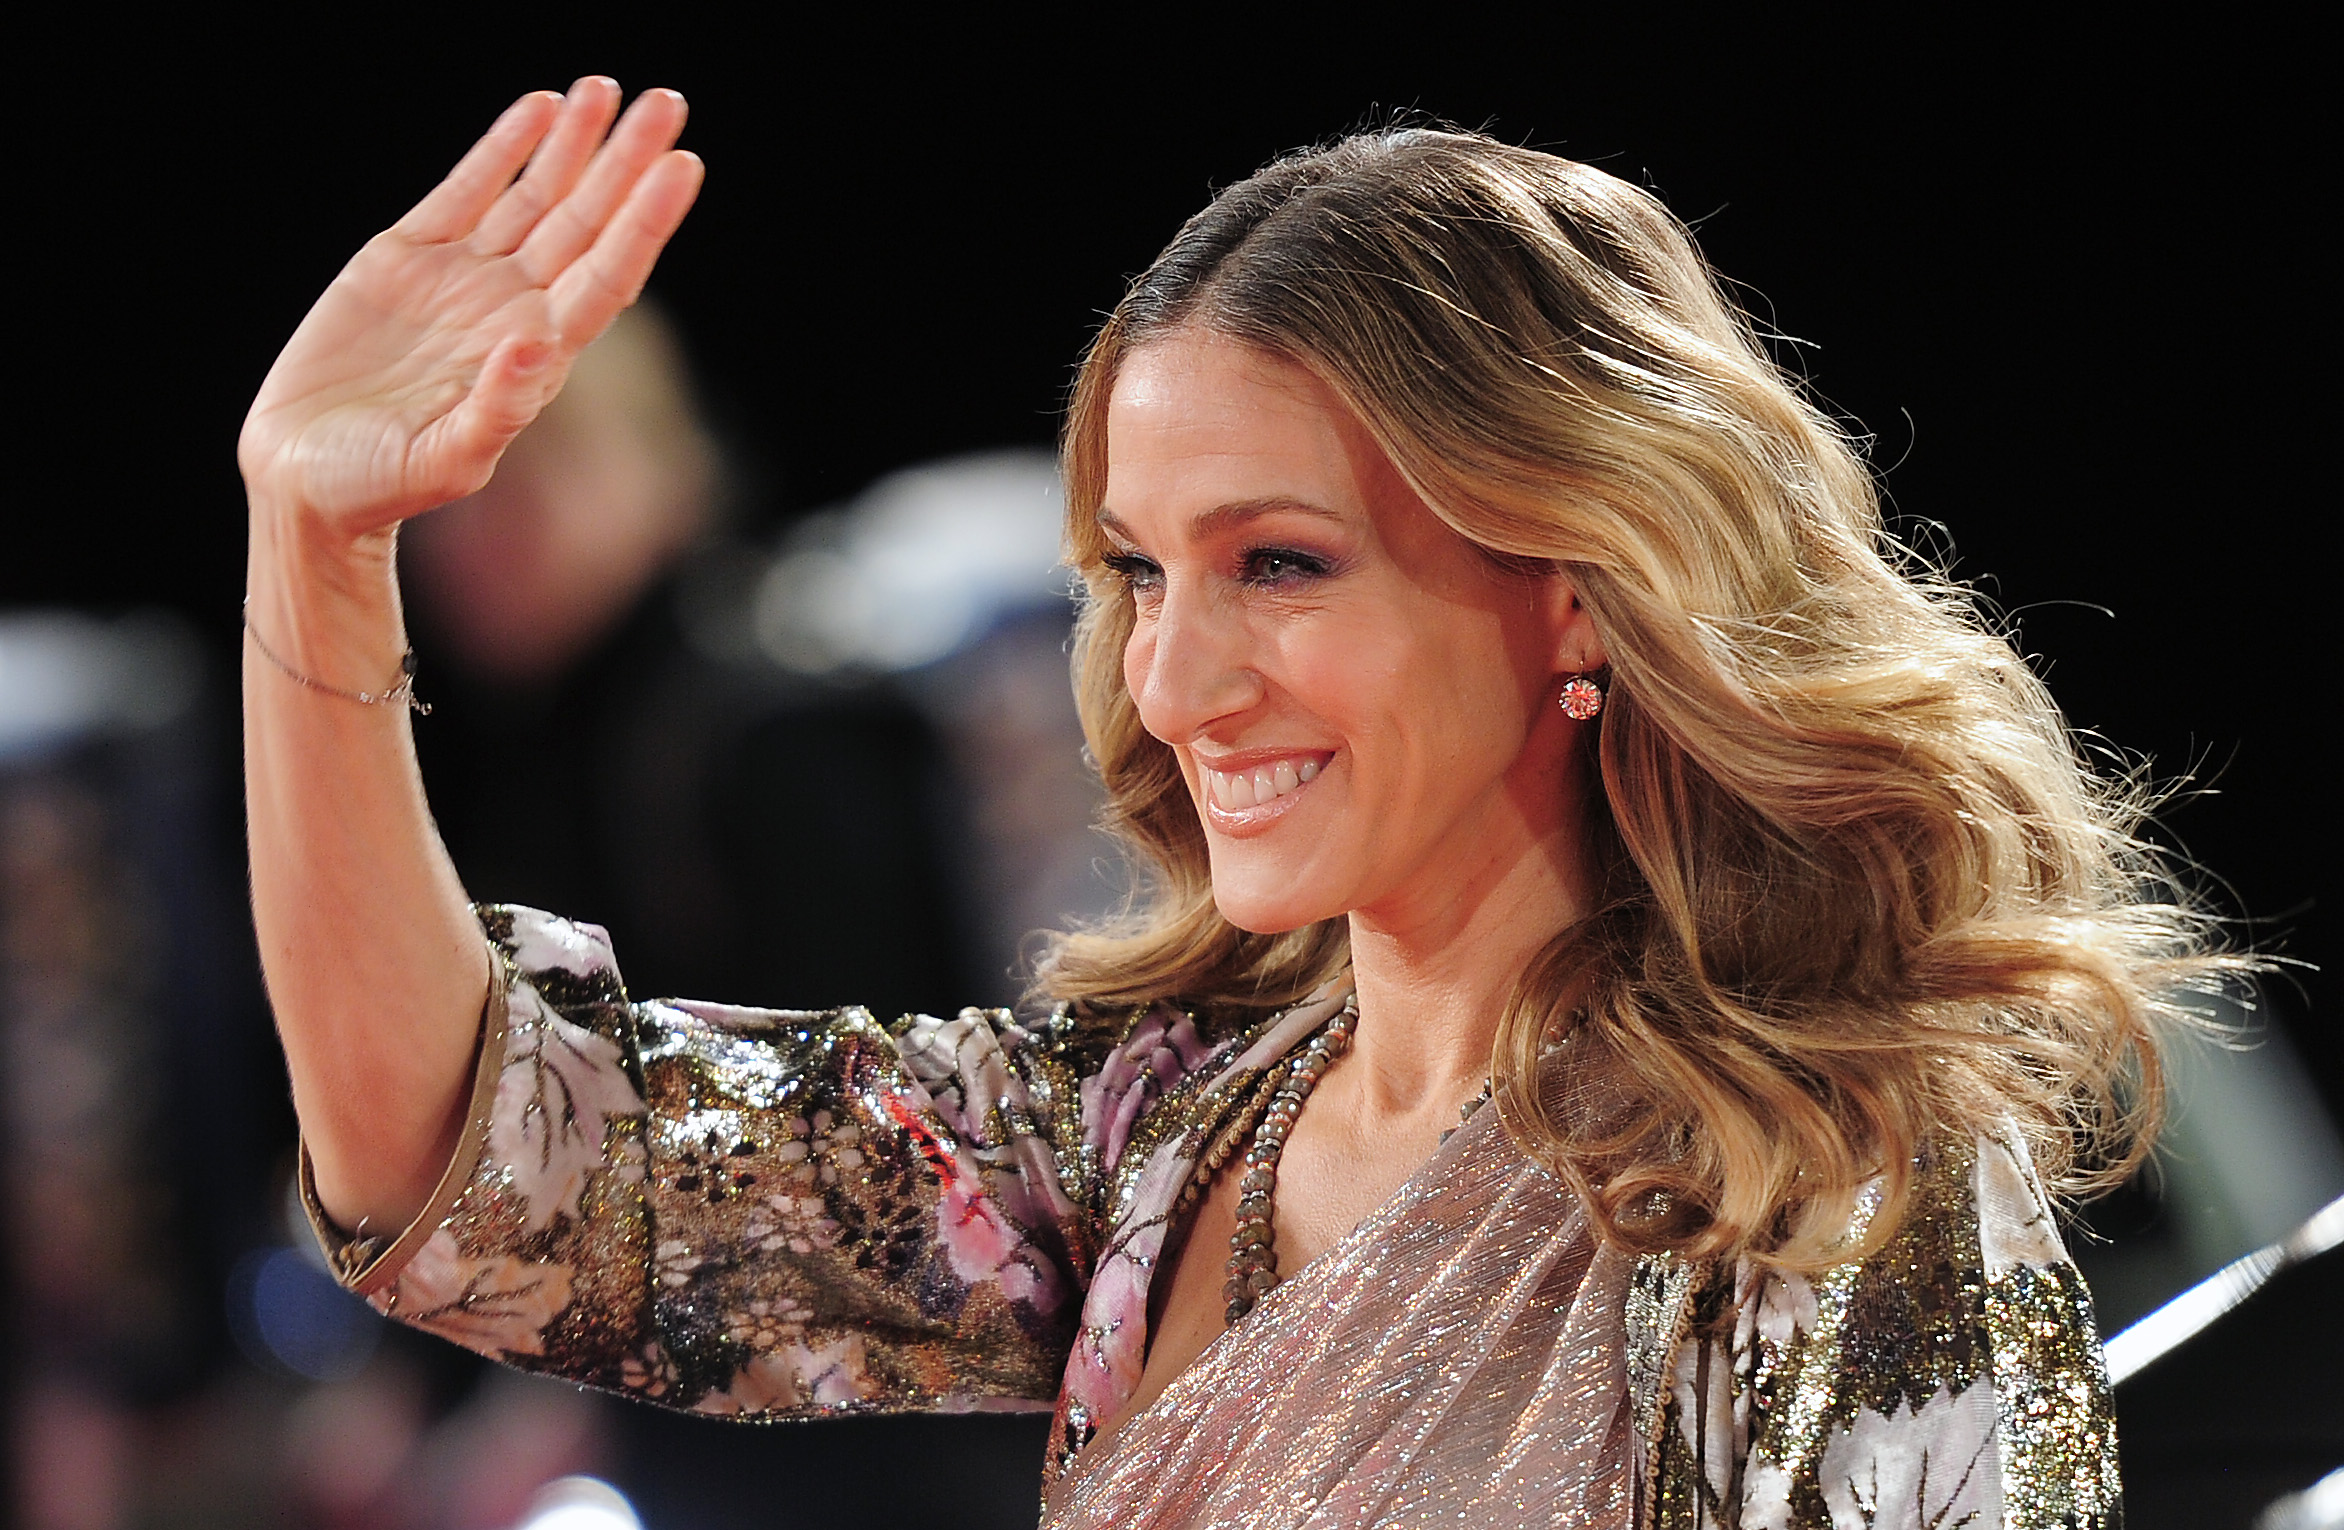 (FILE) US actress and show host Sarah Jessica Parker arrives for the Bambi award in Potsdam, Germany, 11 November 2010. The B